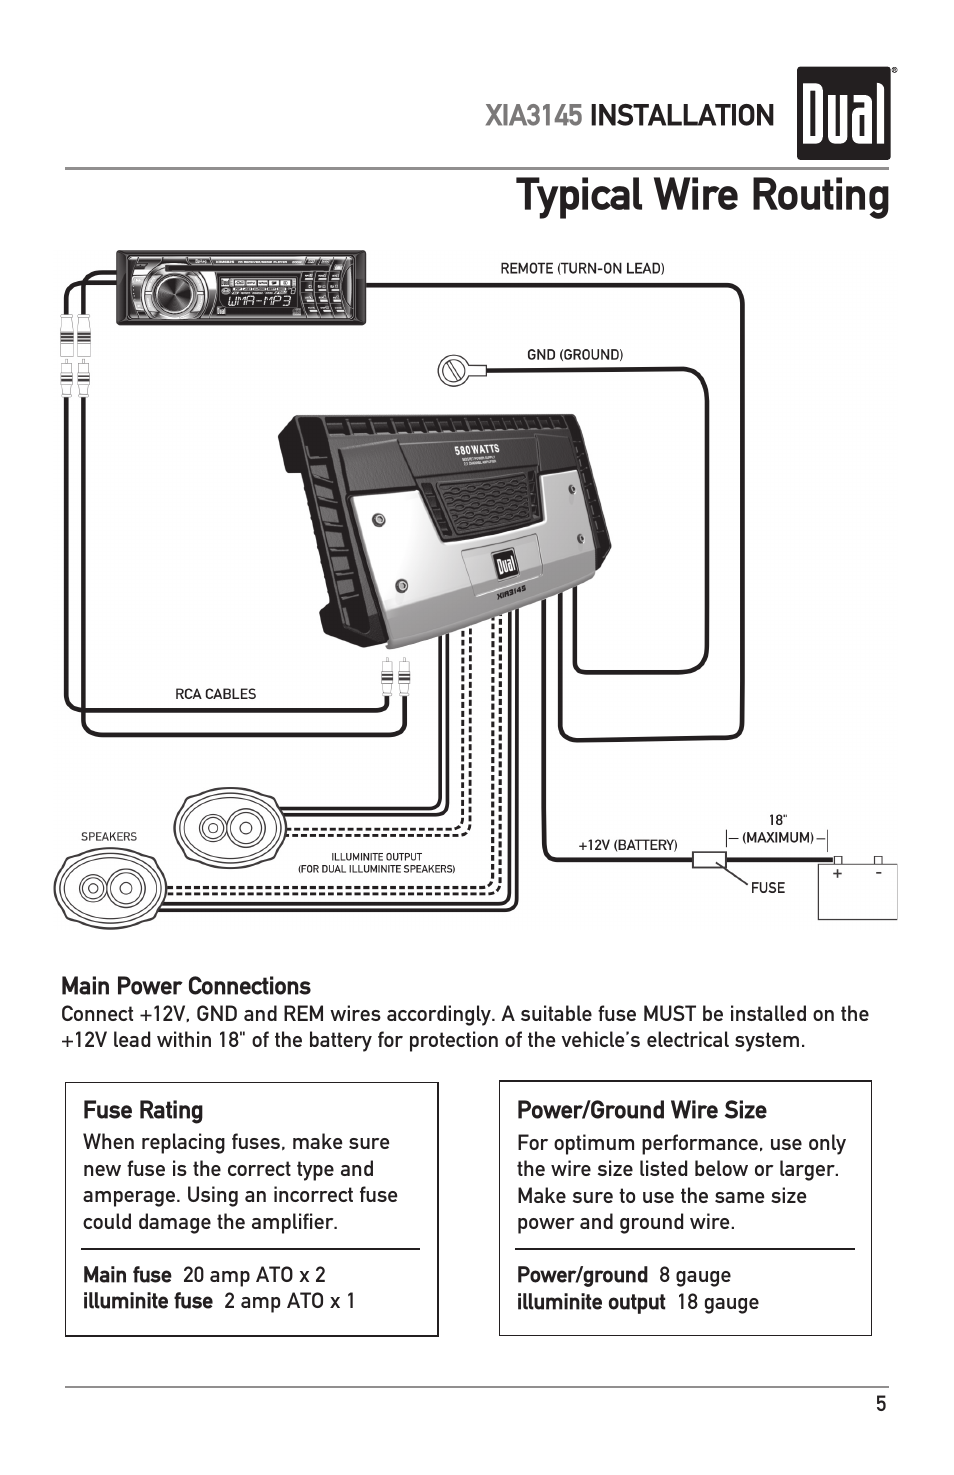 Typical wire routing | Dual XIA3145 User Manual | Page 5 / 12